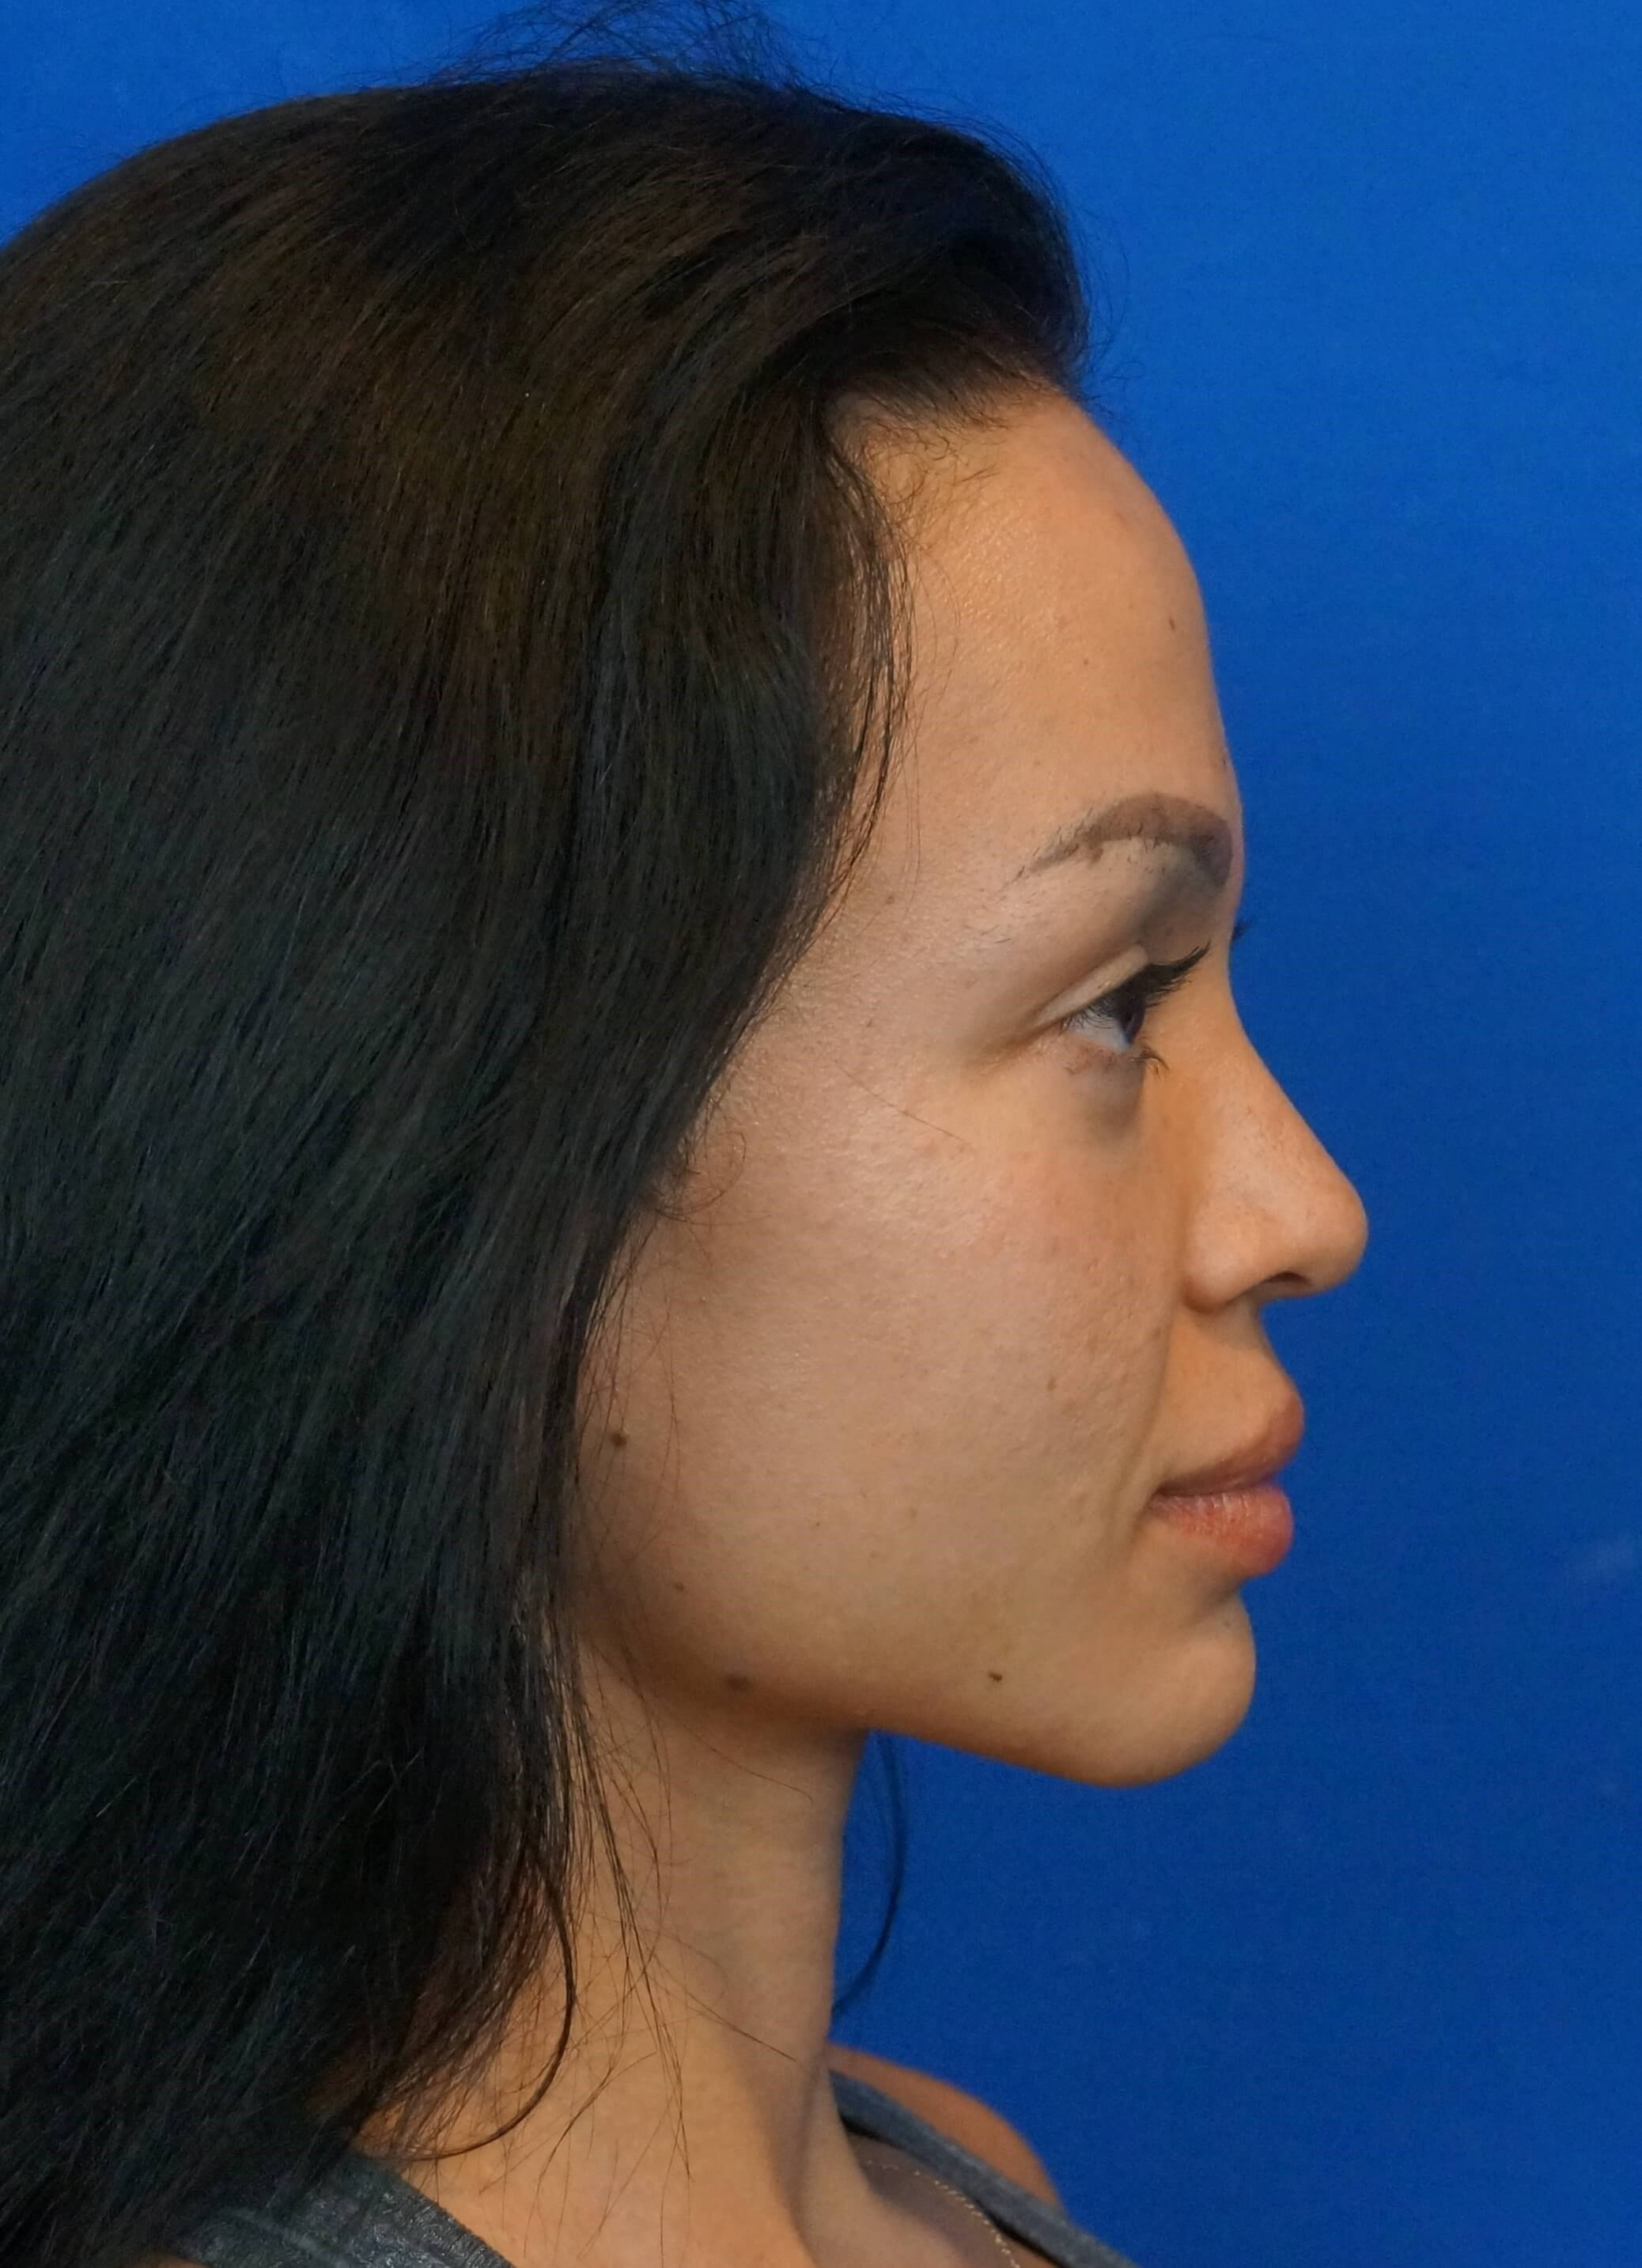 Rhinoplasty Photos Las Vegas After Nose Surgery